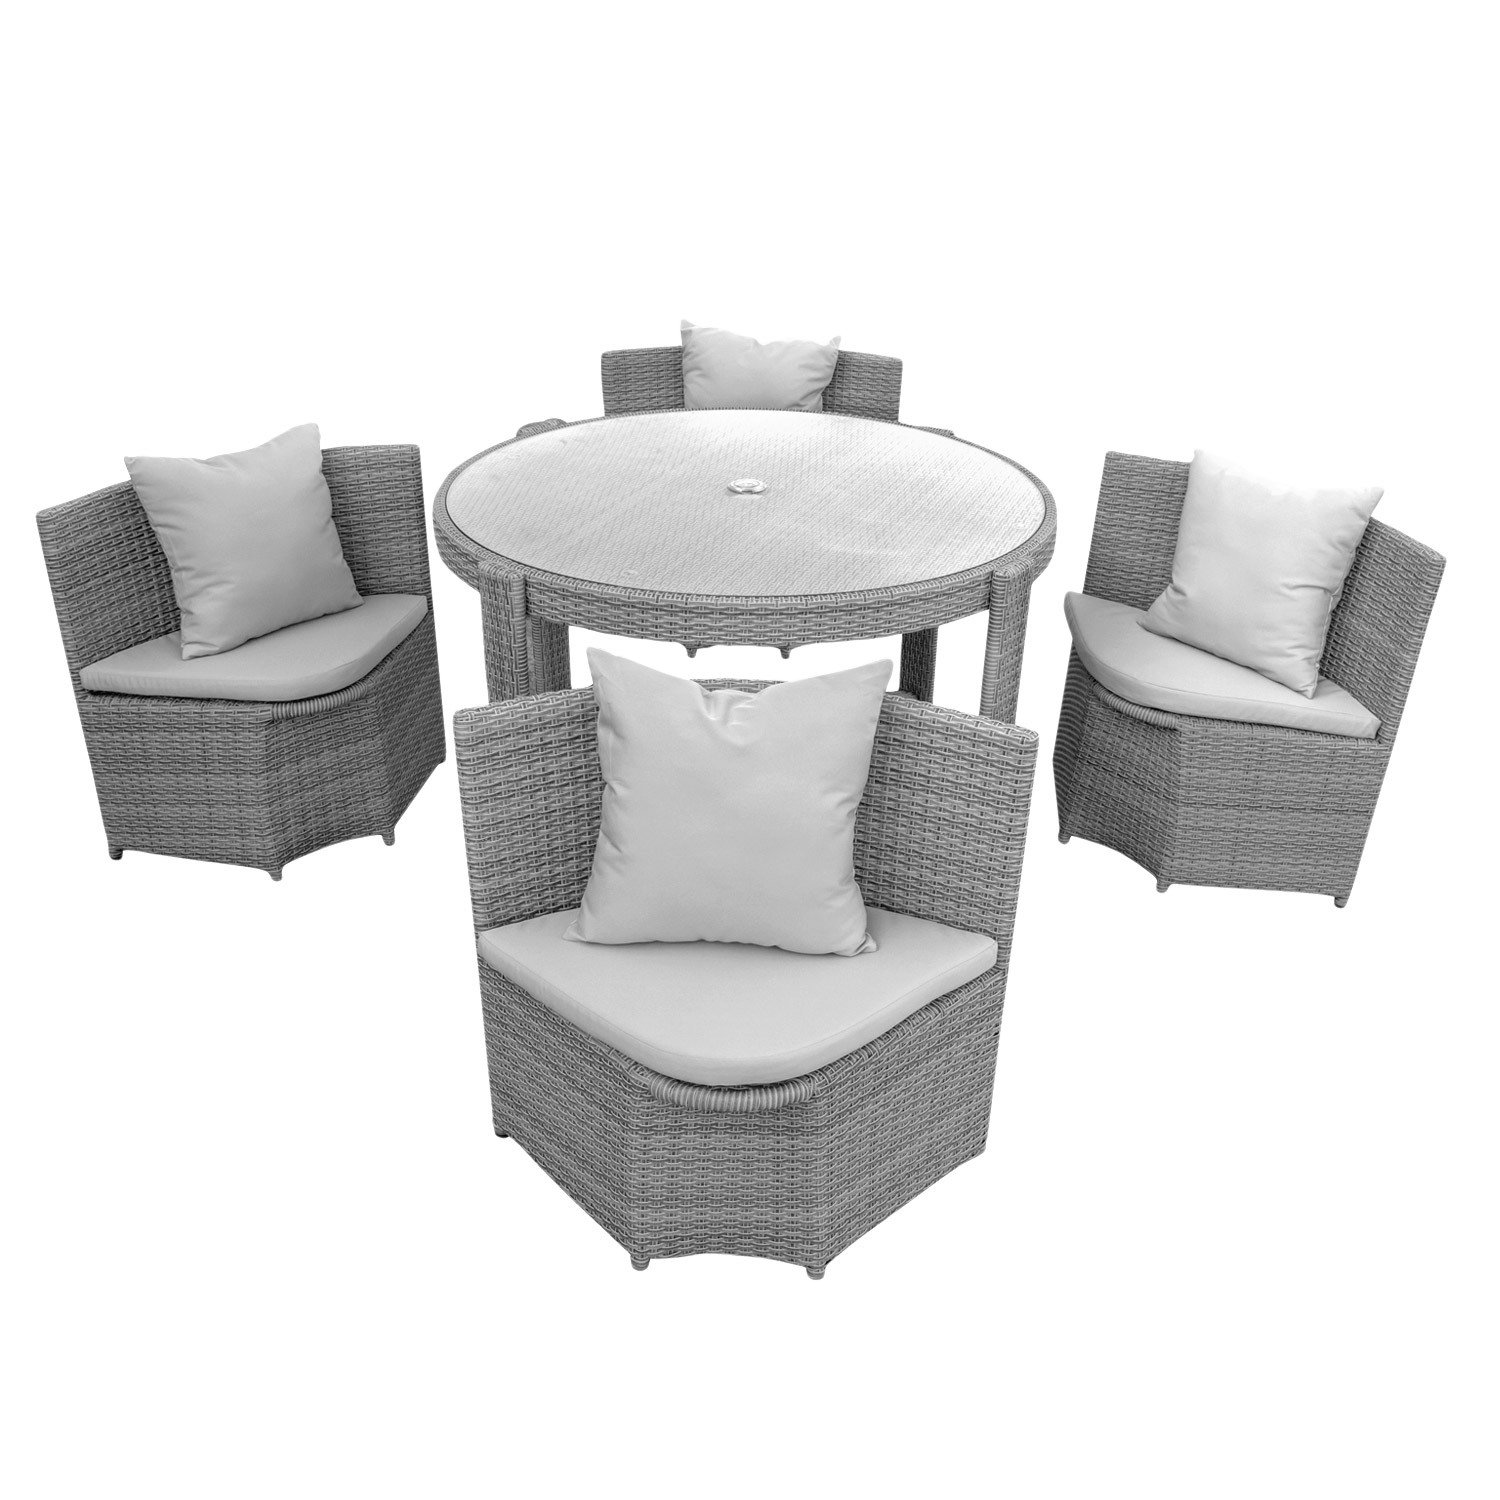 gartenm bel sitzgruppe m bel balkon terrasse polyrattan 1 tisch 4 st hle polster grau. Black Bedroom Furniture Sets. Home Design Ideas